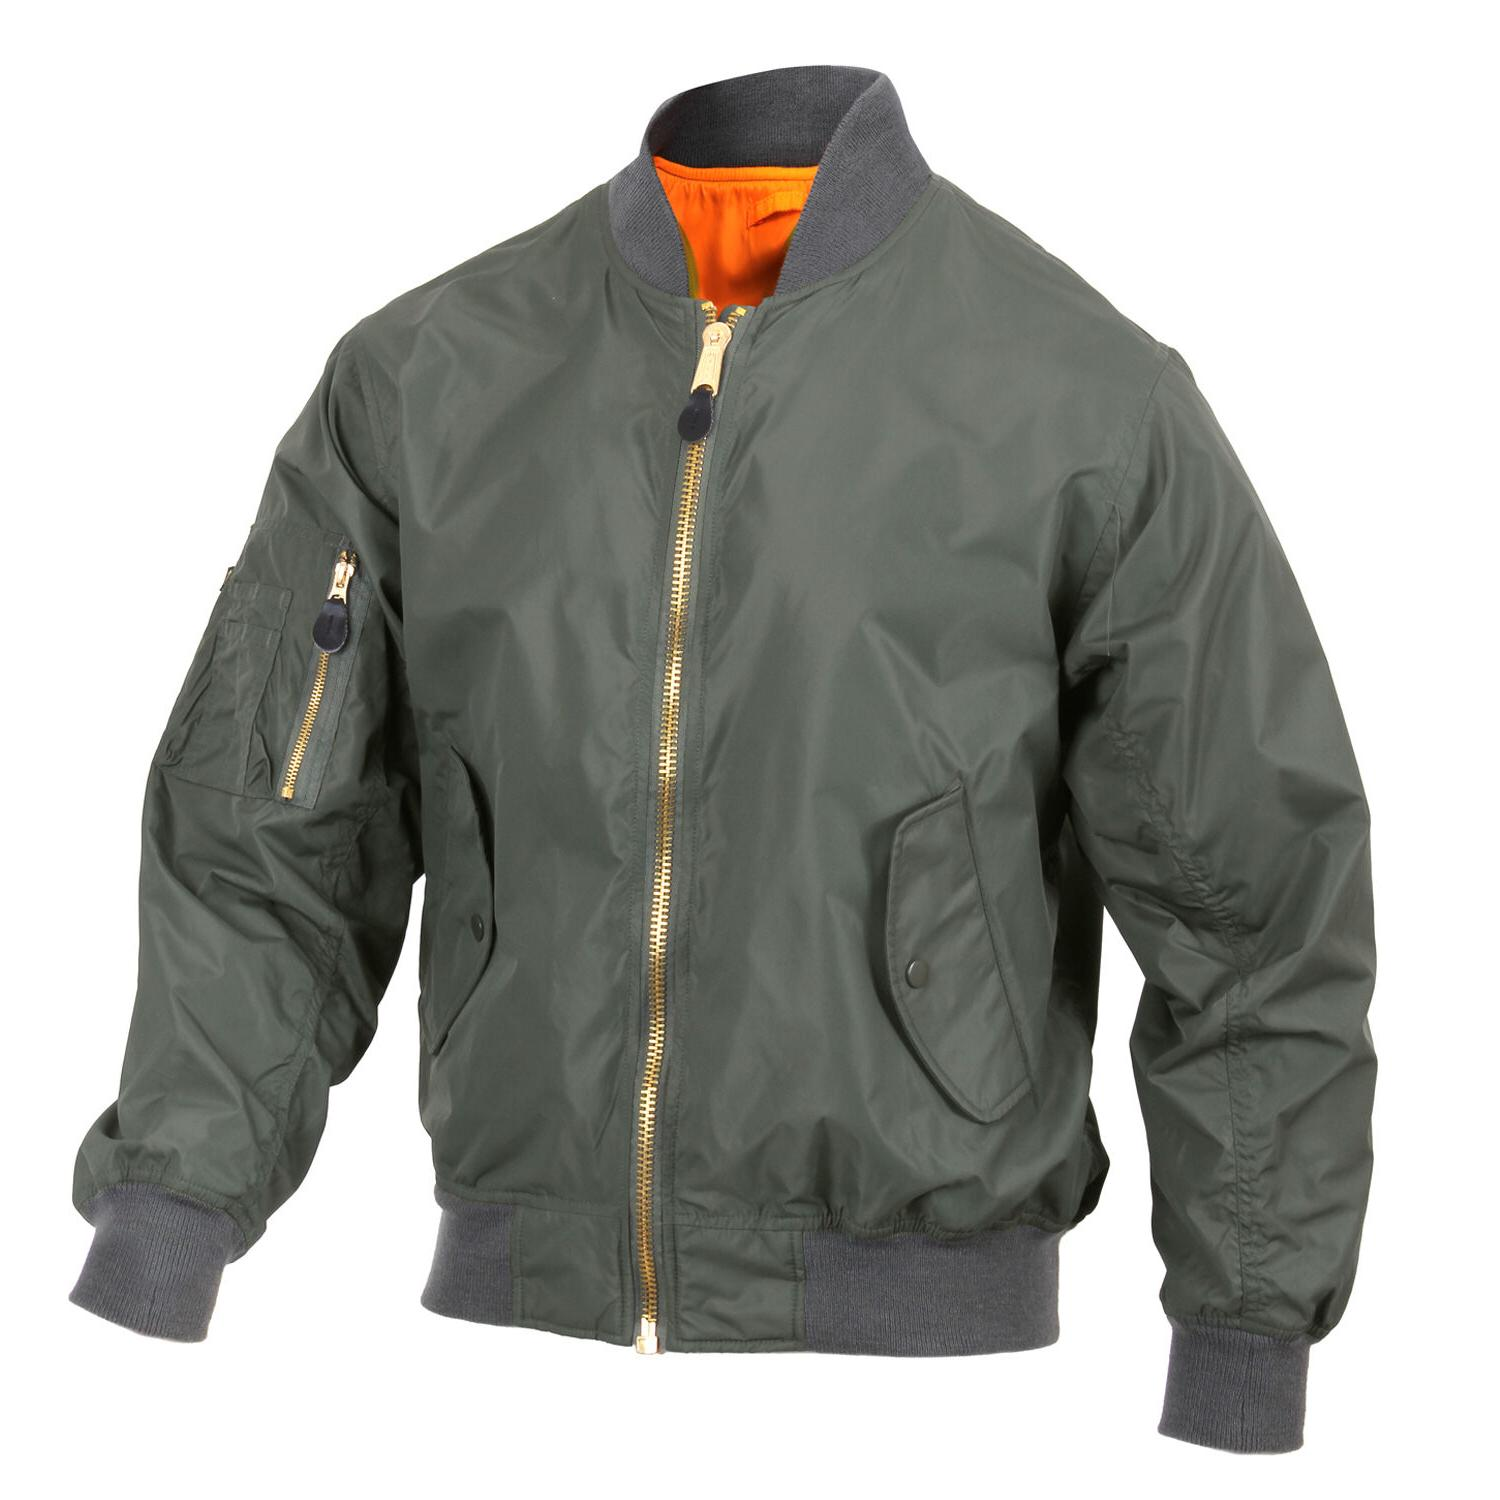 Mens Green Jacket Lightweight MA-1 Flight Military Bomber St